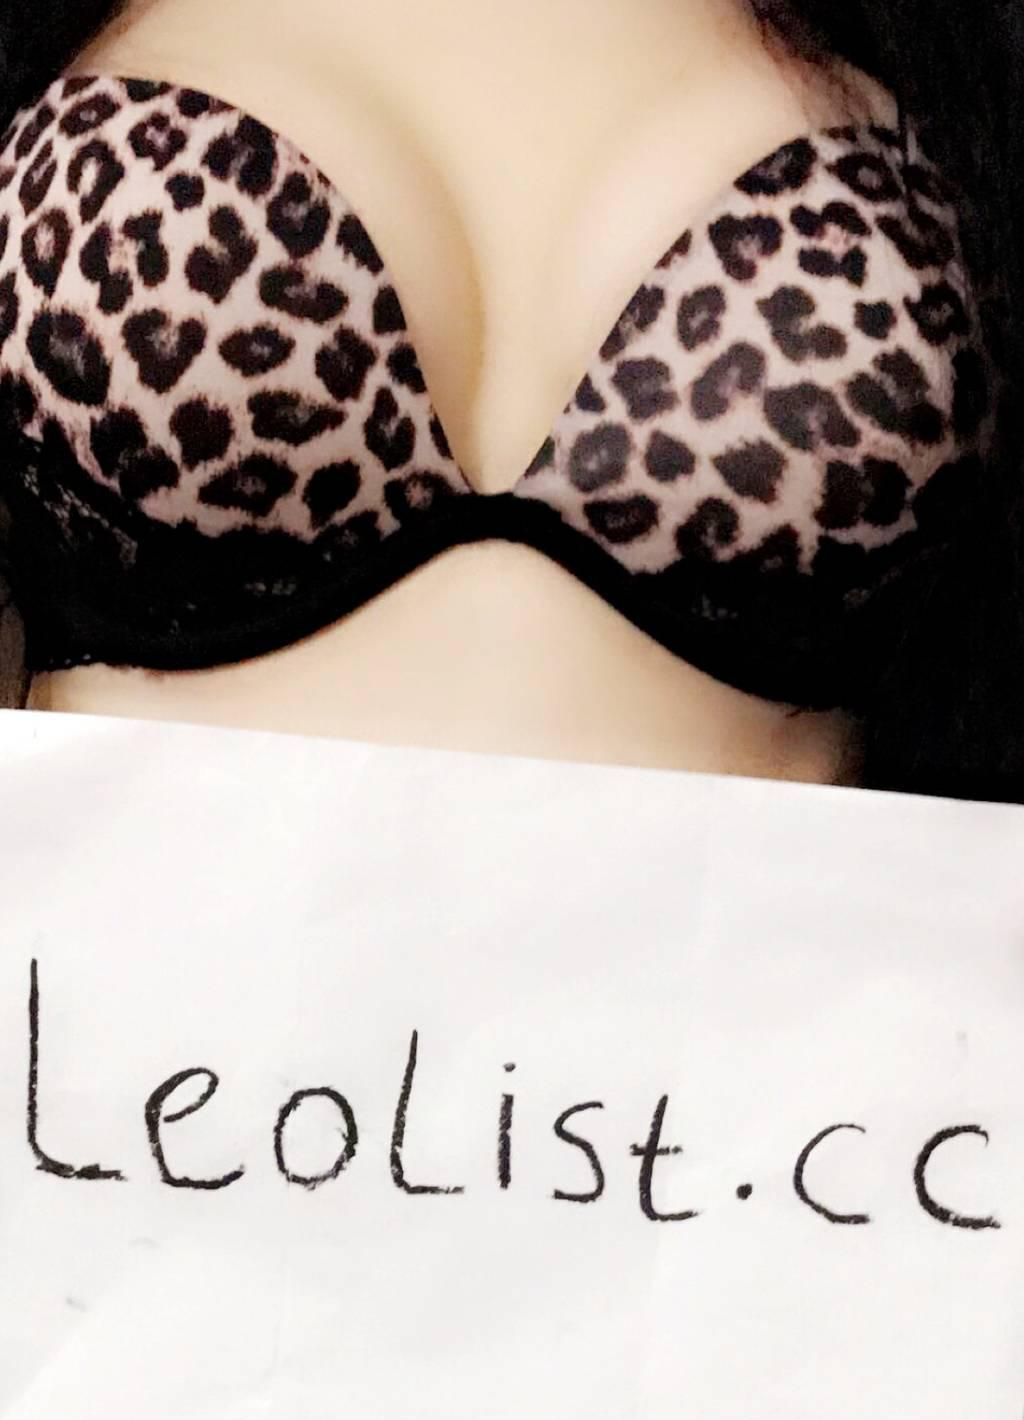 【Outcalls】Sweet! Lulu - The Girl of your Dreams!